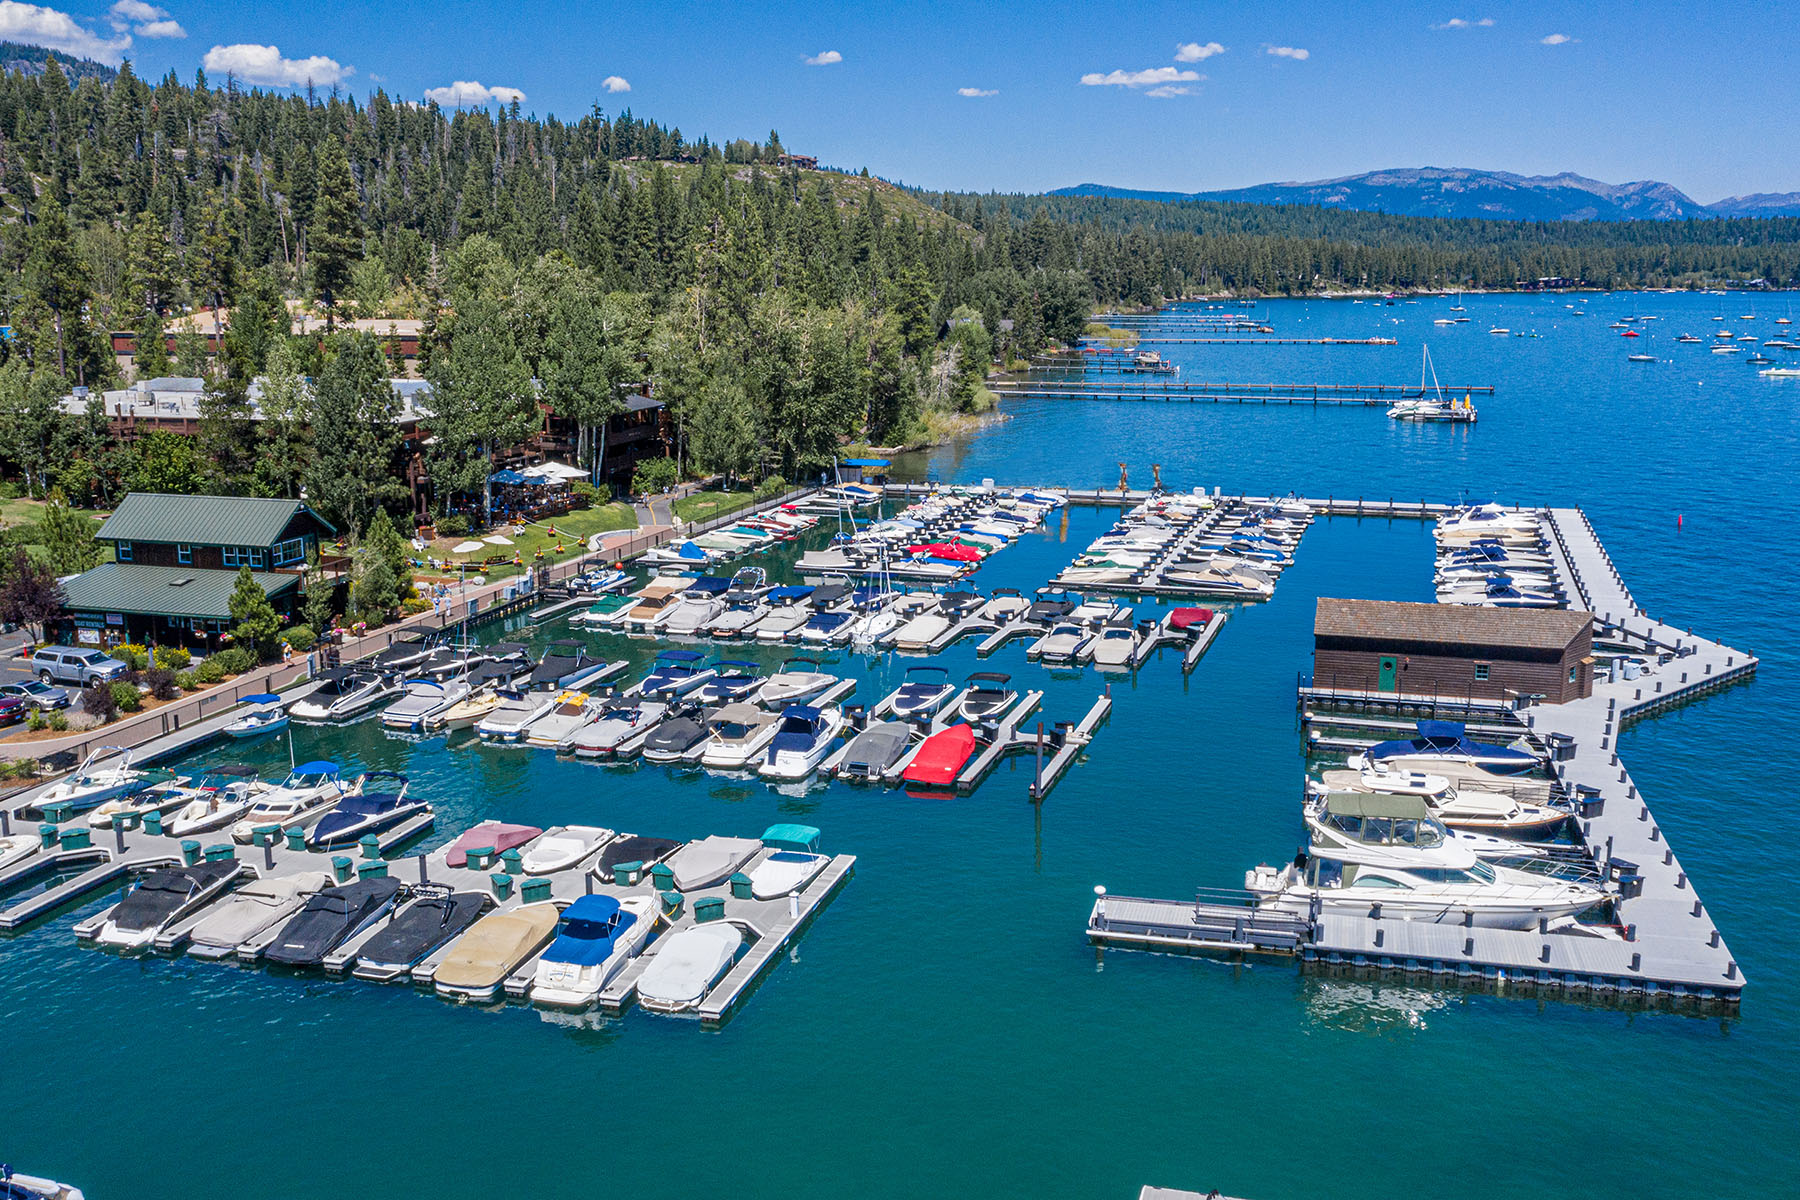 in 700 N Lake Blvd #E-16, Tahoe City, California ,96145